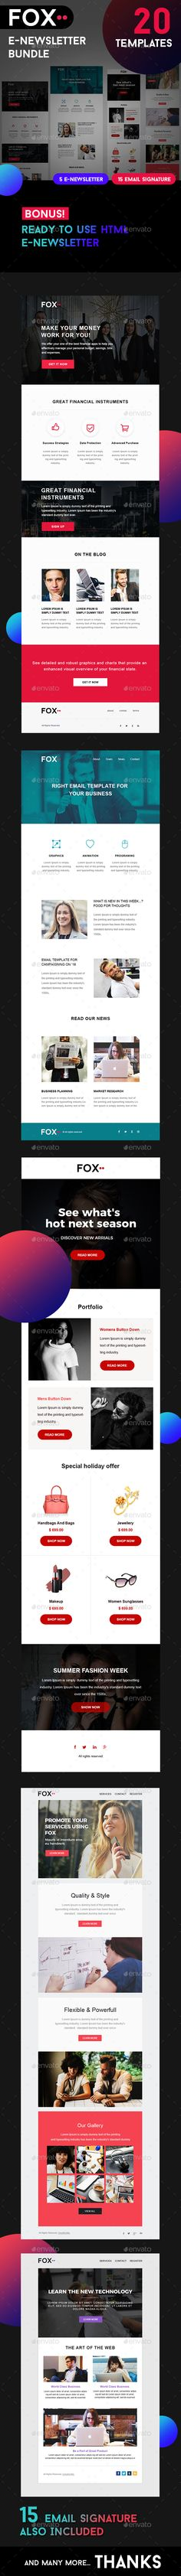 Fox - PSD + HTML Email Template